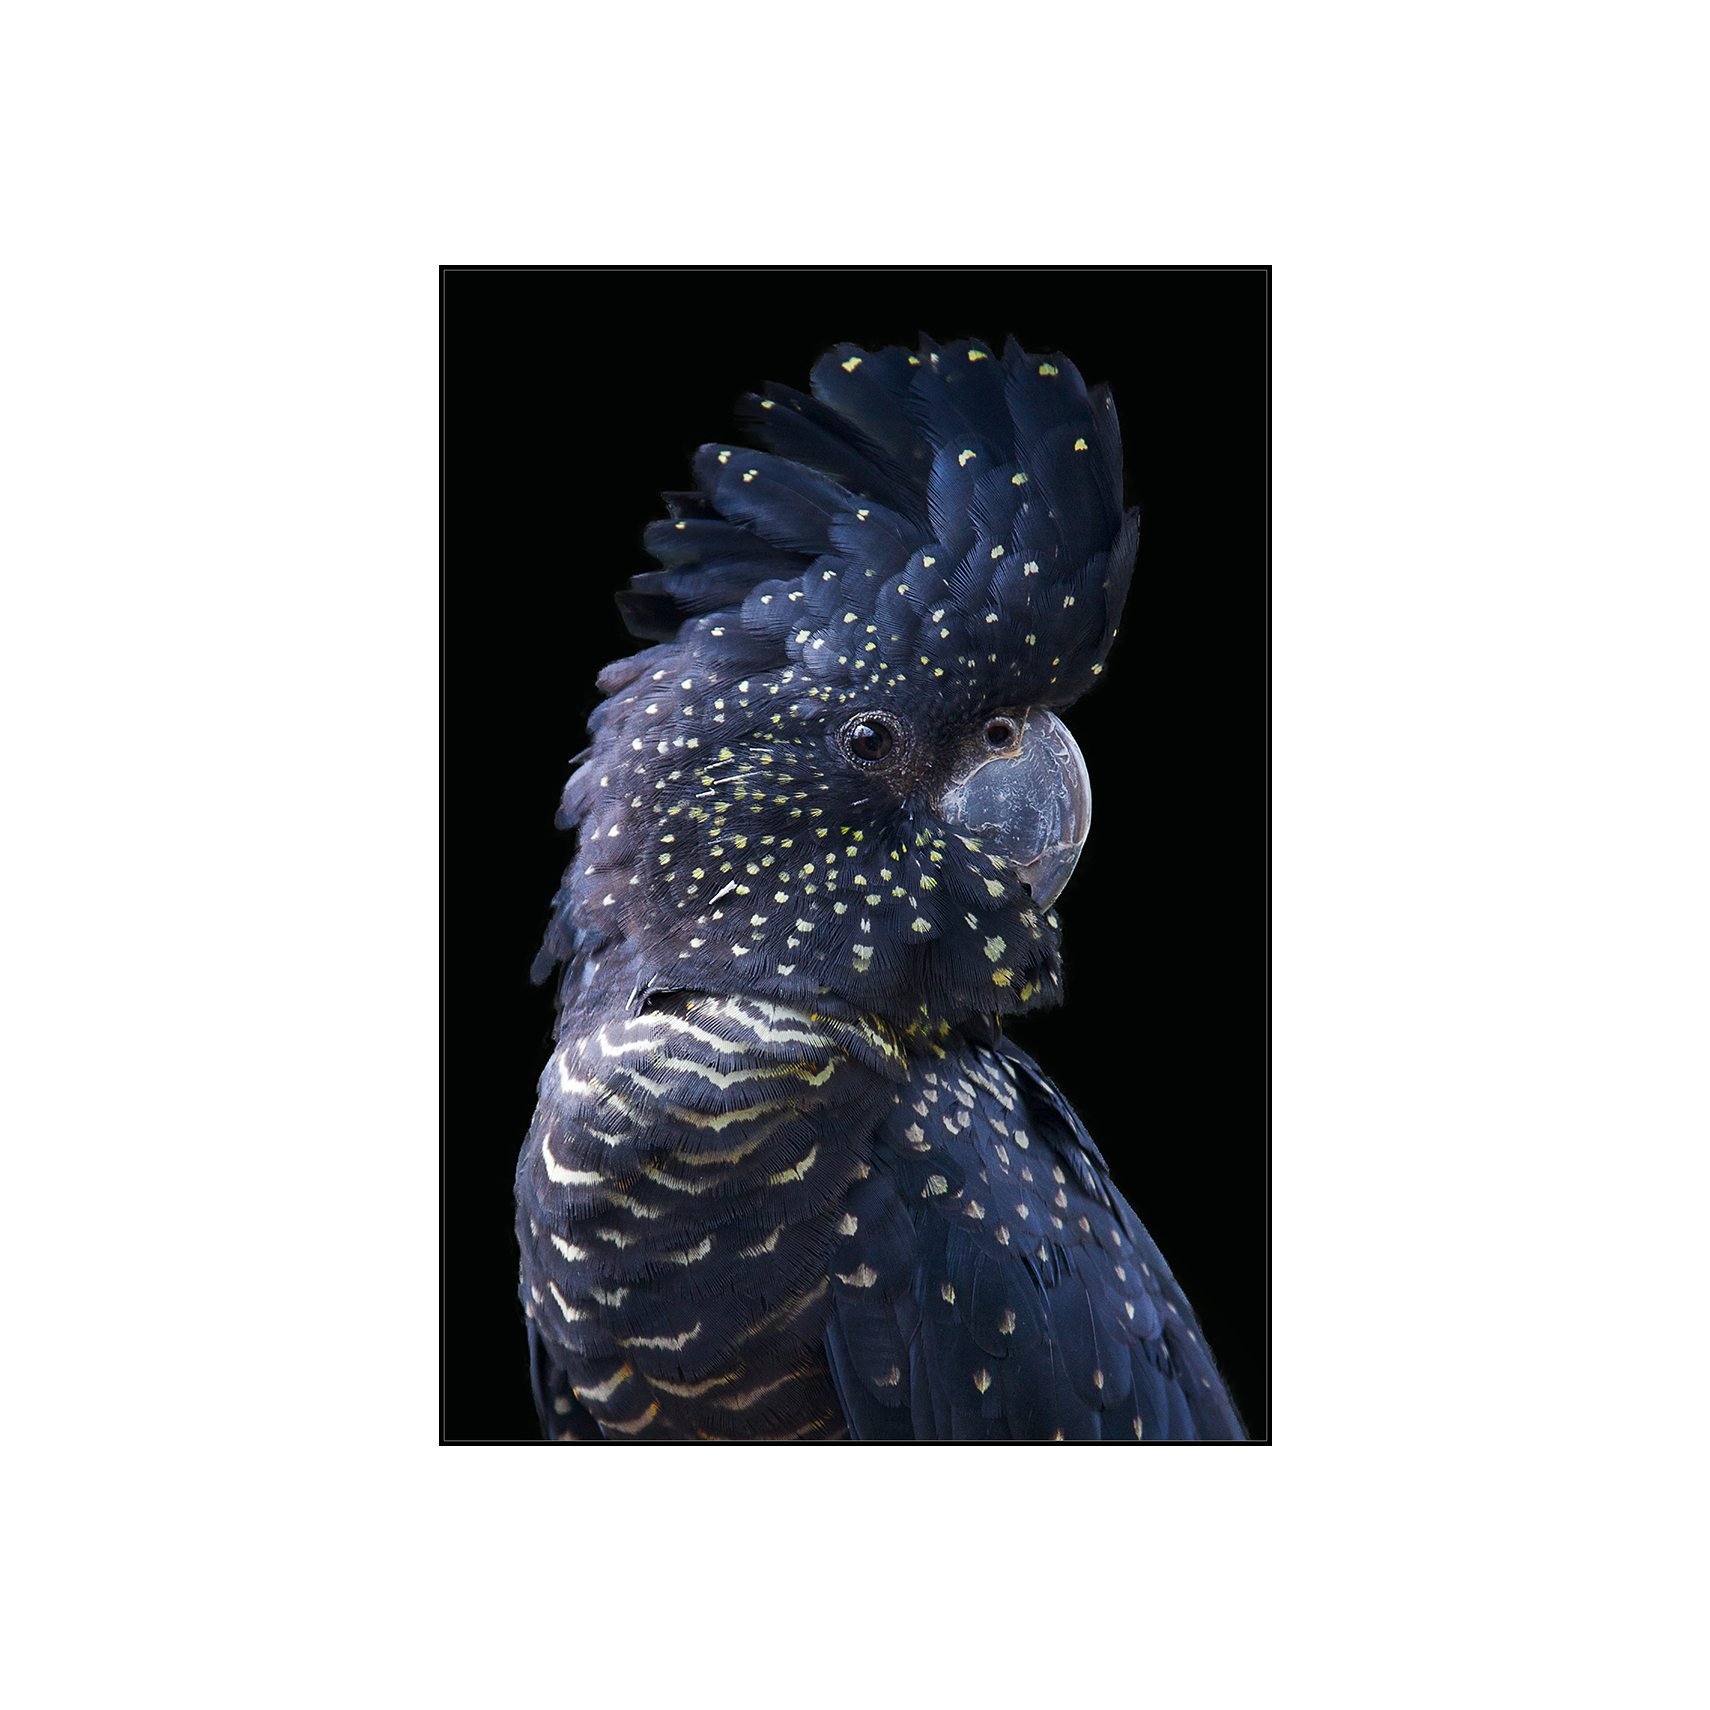 COCKATOO FR Lærredsprint 92 x 65 cm - Blue og Sort ramme